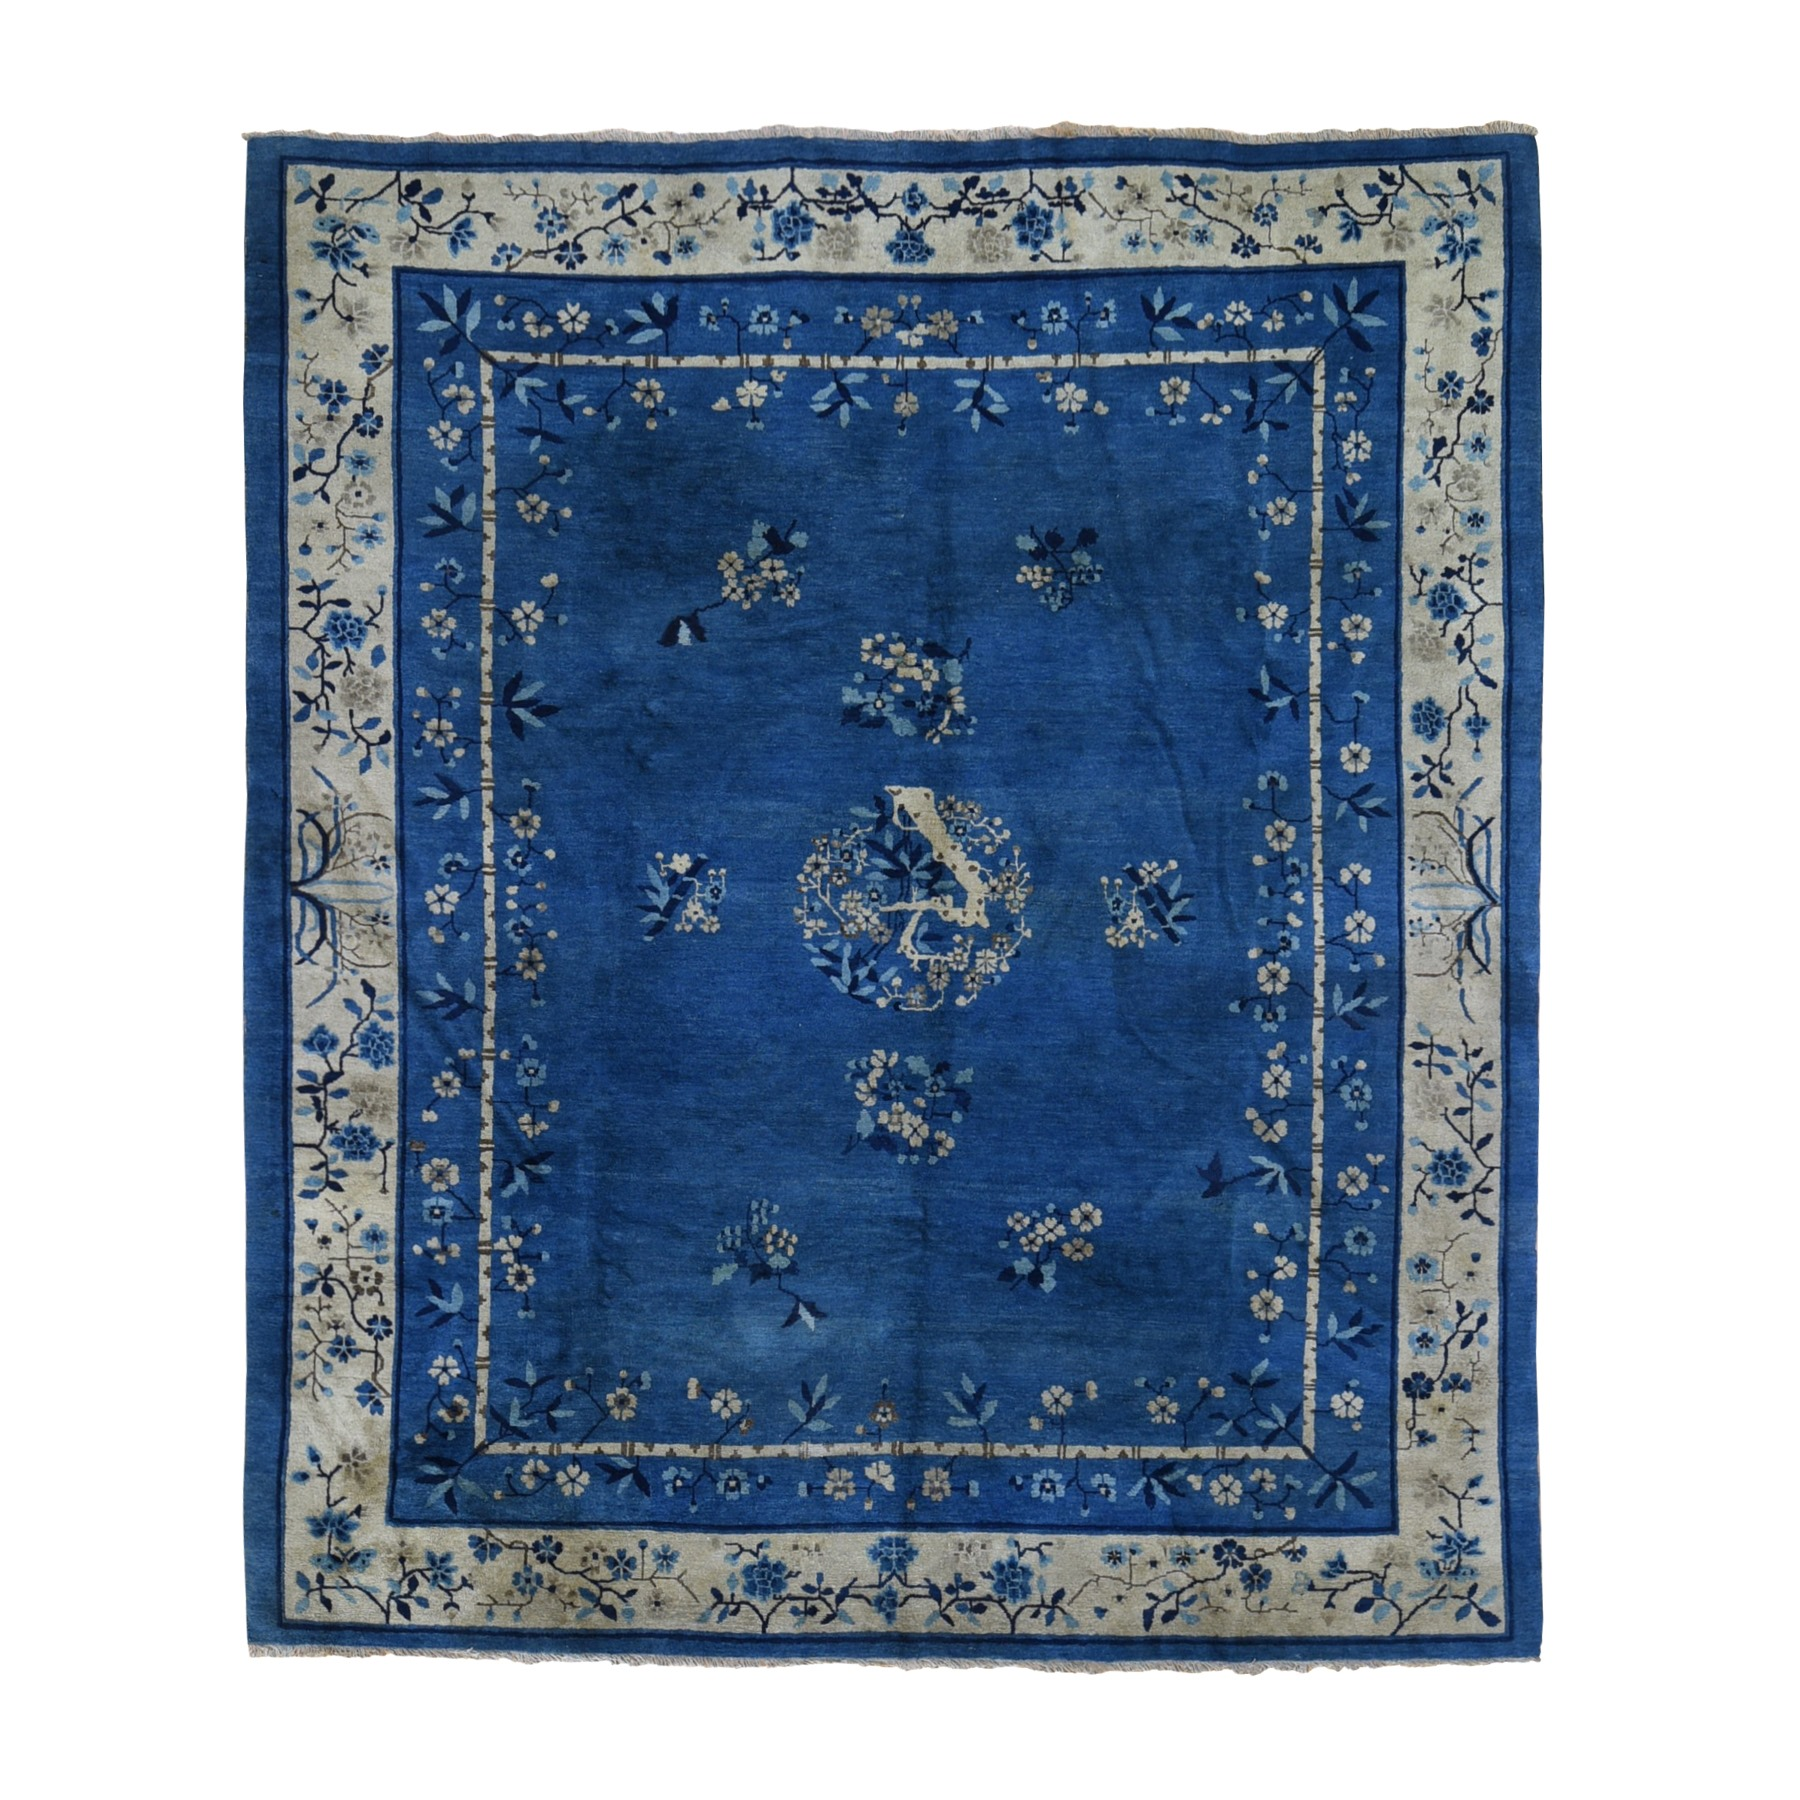 Antique Collection Hand Knotted Blue Rug No: 1118910